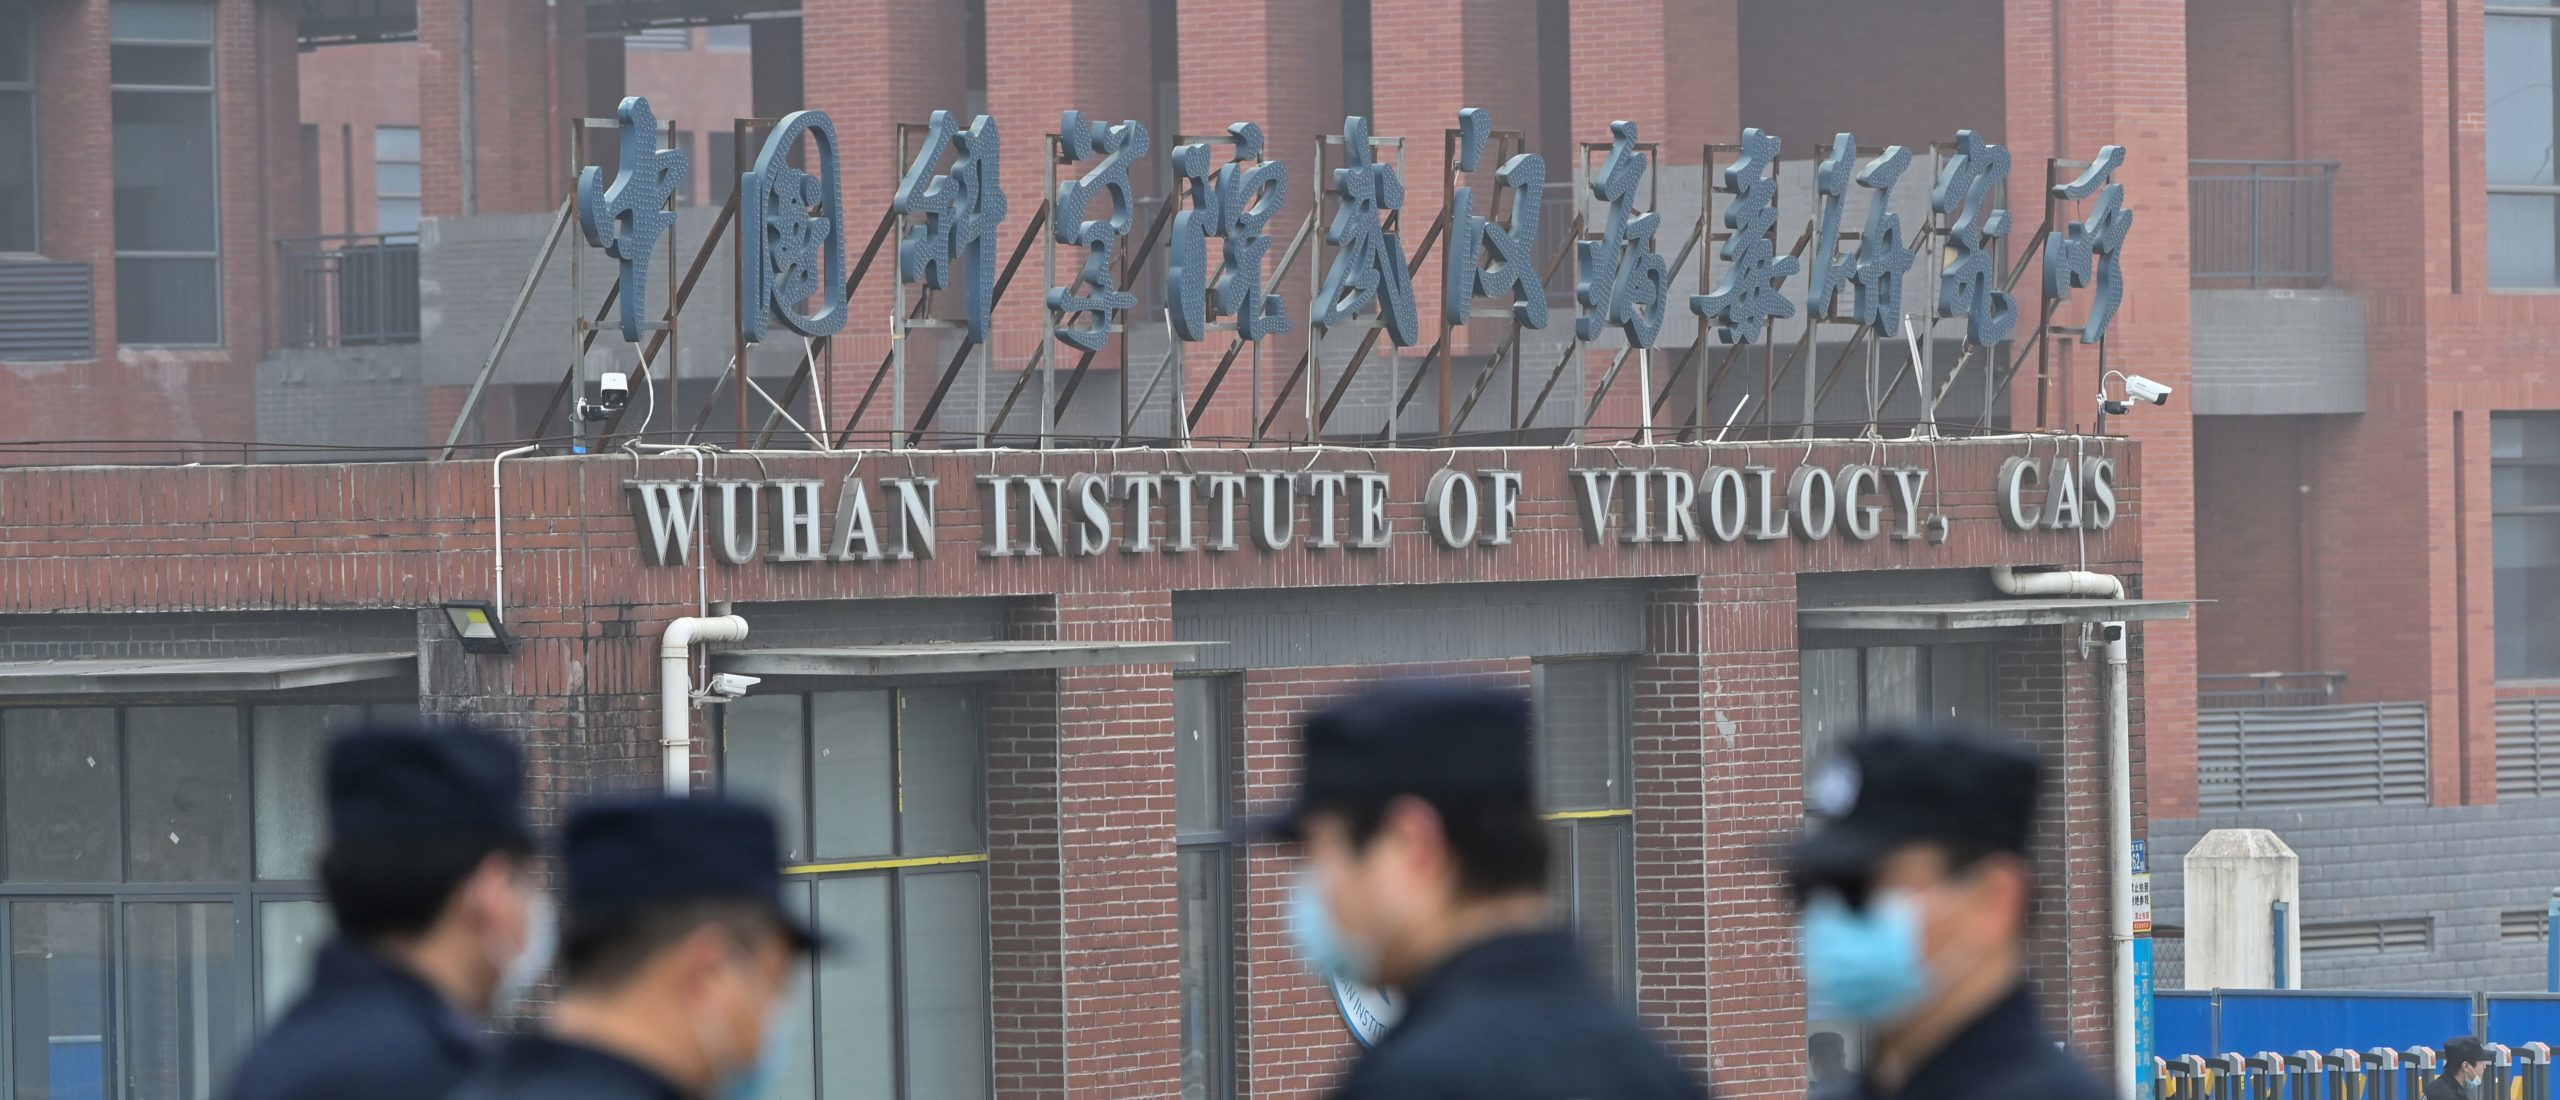 Security personnel stand guard outside the Wuhan Institute of Virology in Wuhan as members of the World Health Organization (WHO) team investigating the origins of the COVID-19 coronavirus make a visit to the institute in Wuhan in China's central Hubei province on February 3, 2021. (Photo by HECTOR RETAMAL/AFP via Getty Images)